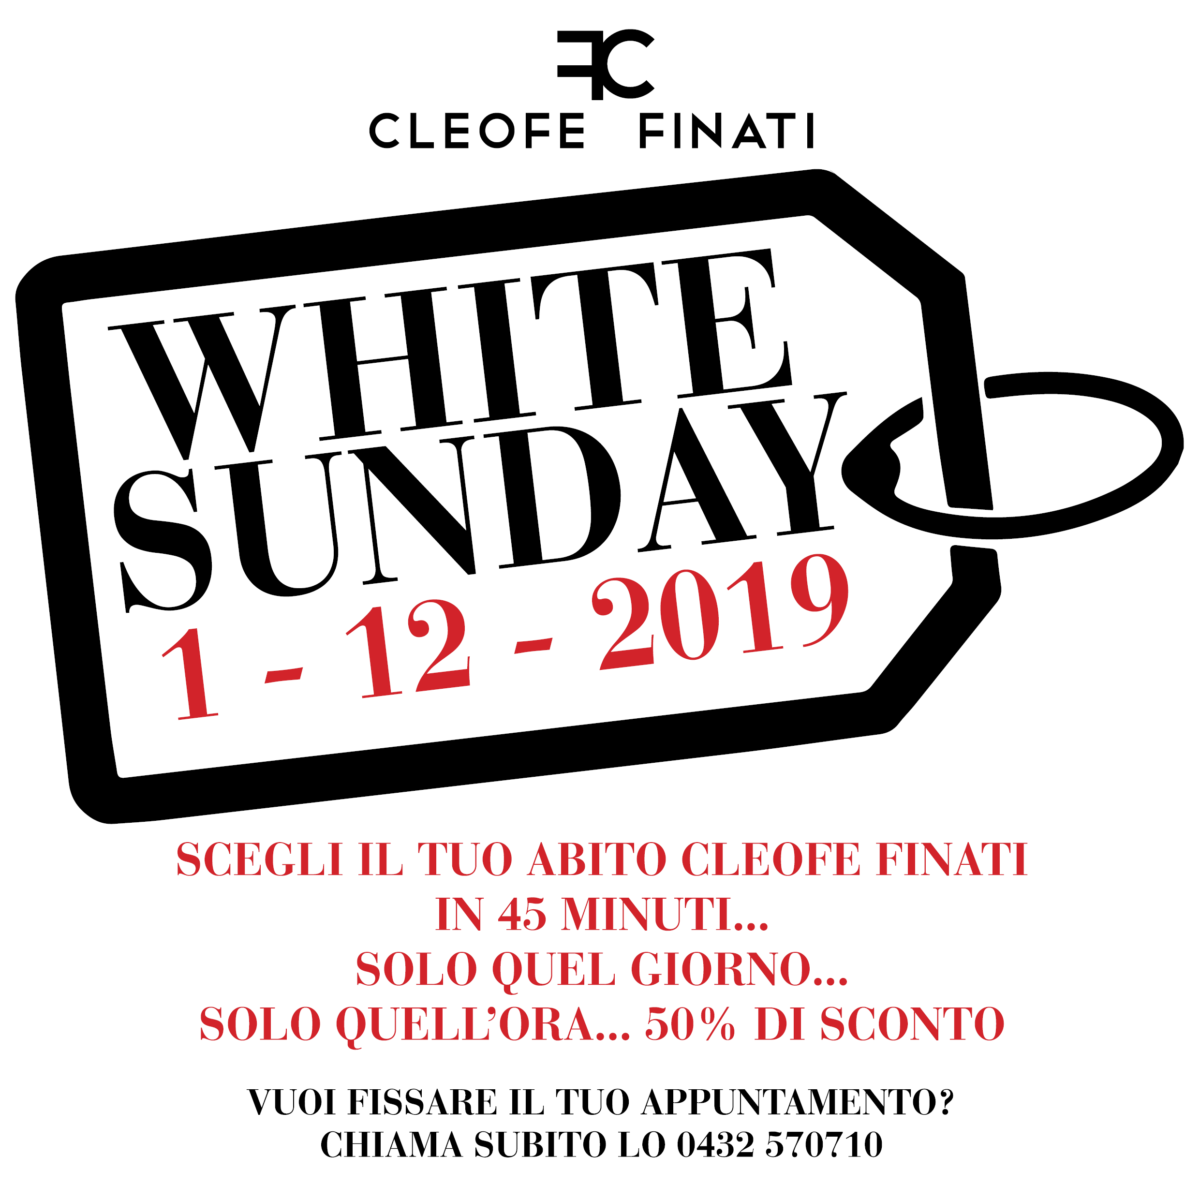 Exclusive event! White sunday only on 1 December and only by Cleofe finati and the retailers who joined the initiative!